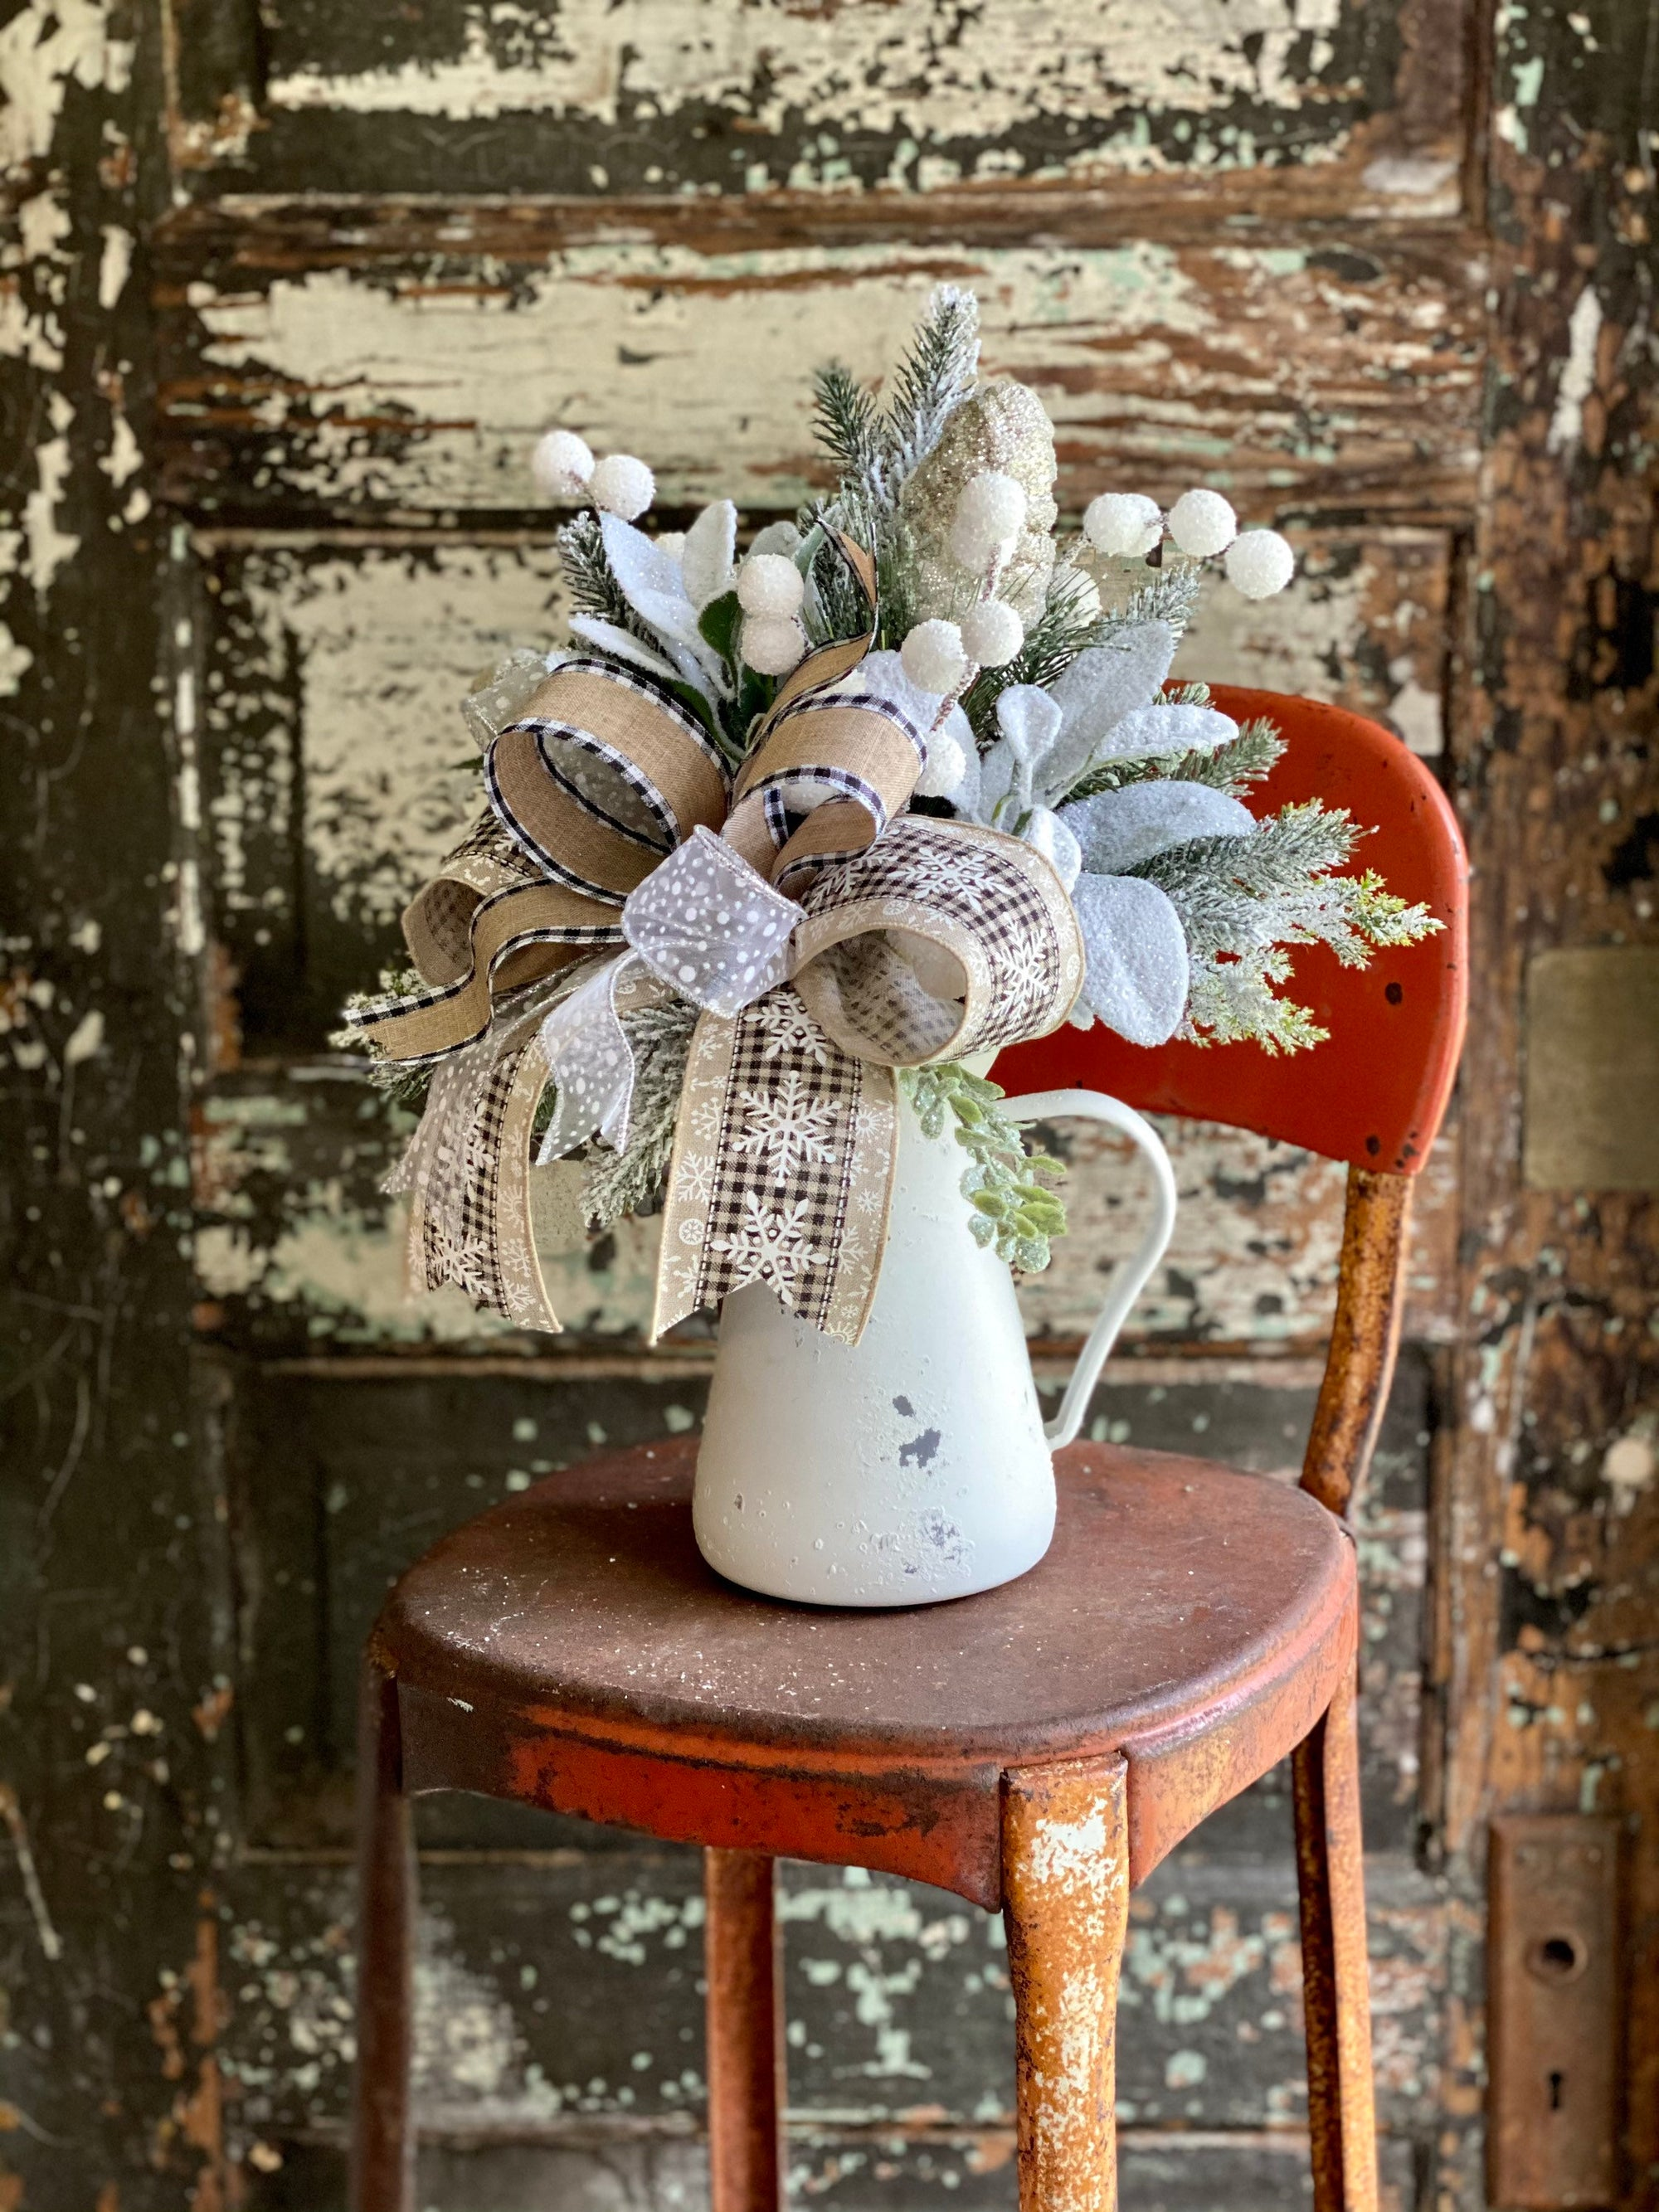 The Greta Black & White Farmhouse Christmas Centerpiece For Dining Table, snowy winter pine arrangement for kitchen~Pitcher centerpiece